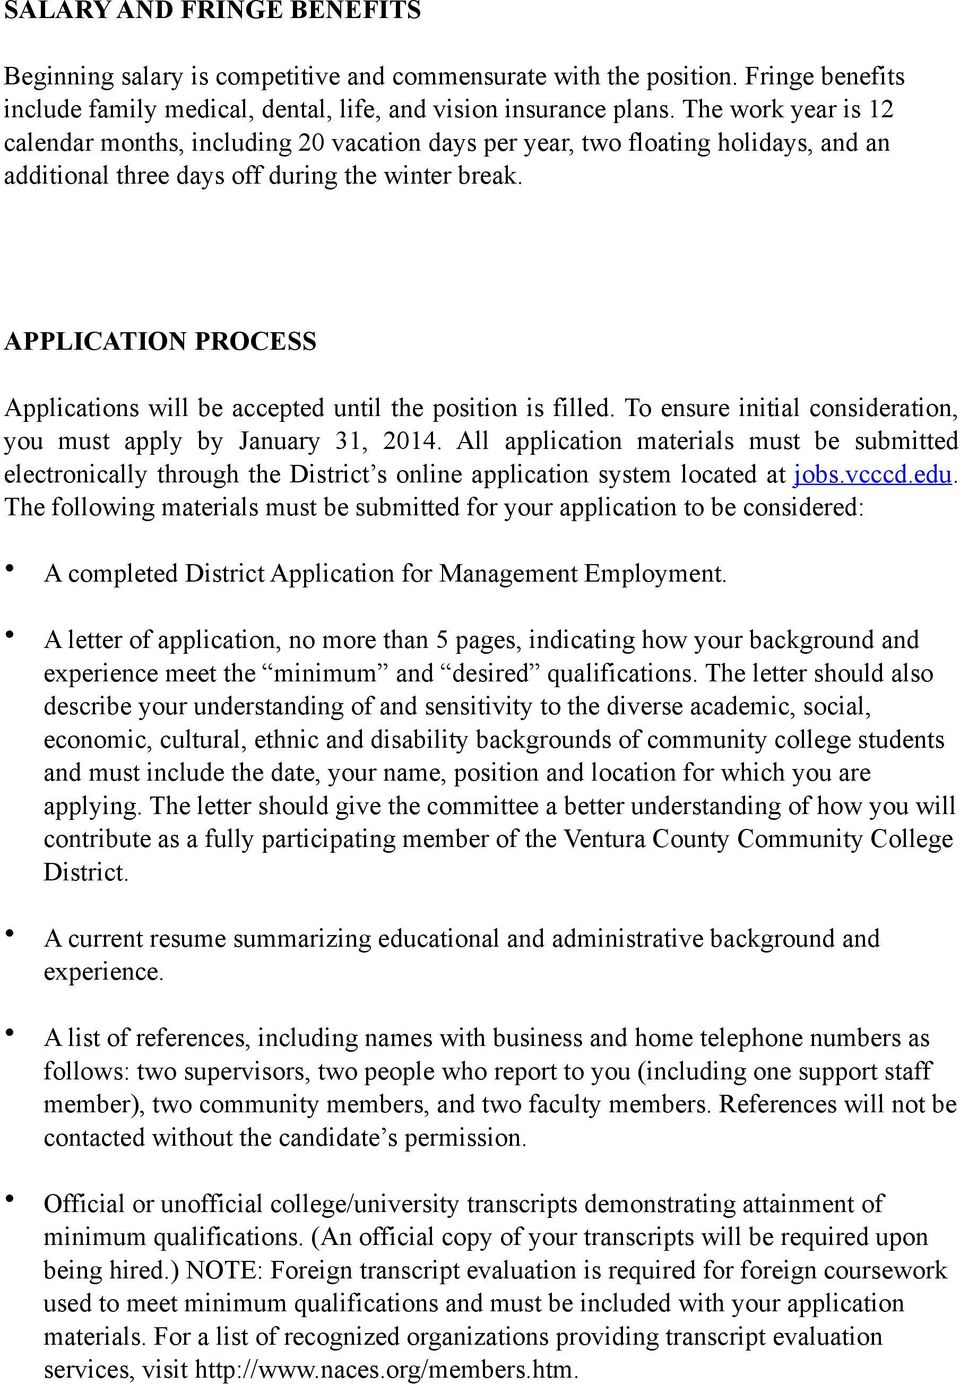 APPLICATION PROCESS Applications will be accepted until the position is filled. To ensure initial consideration, you must apply by January 31, 2014.